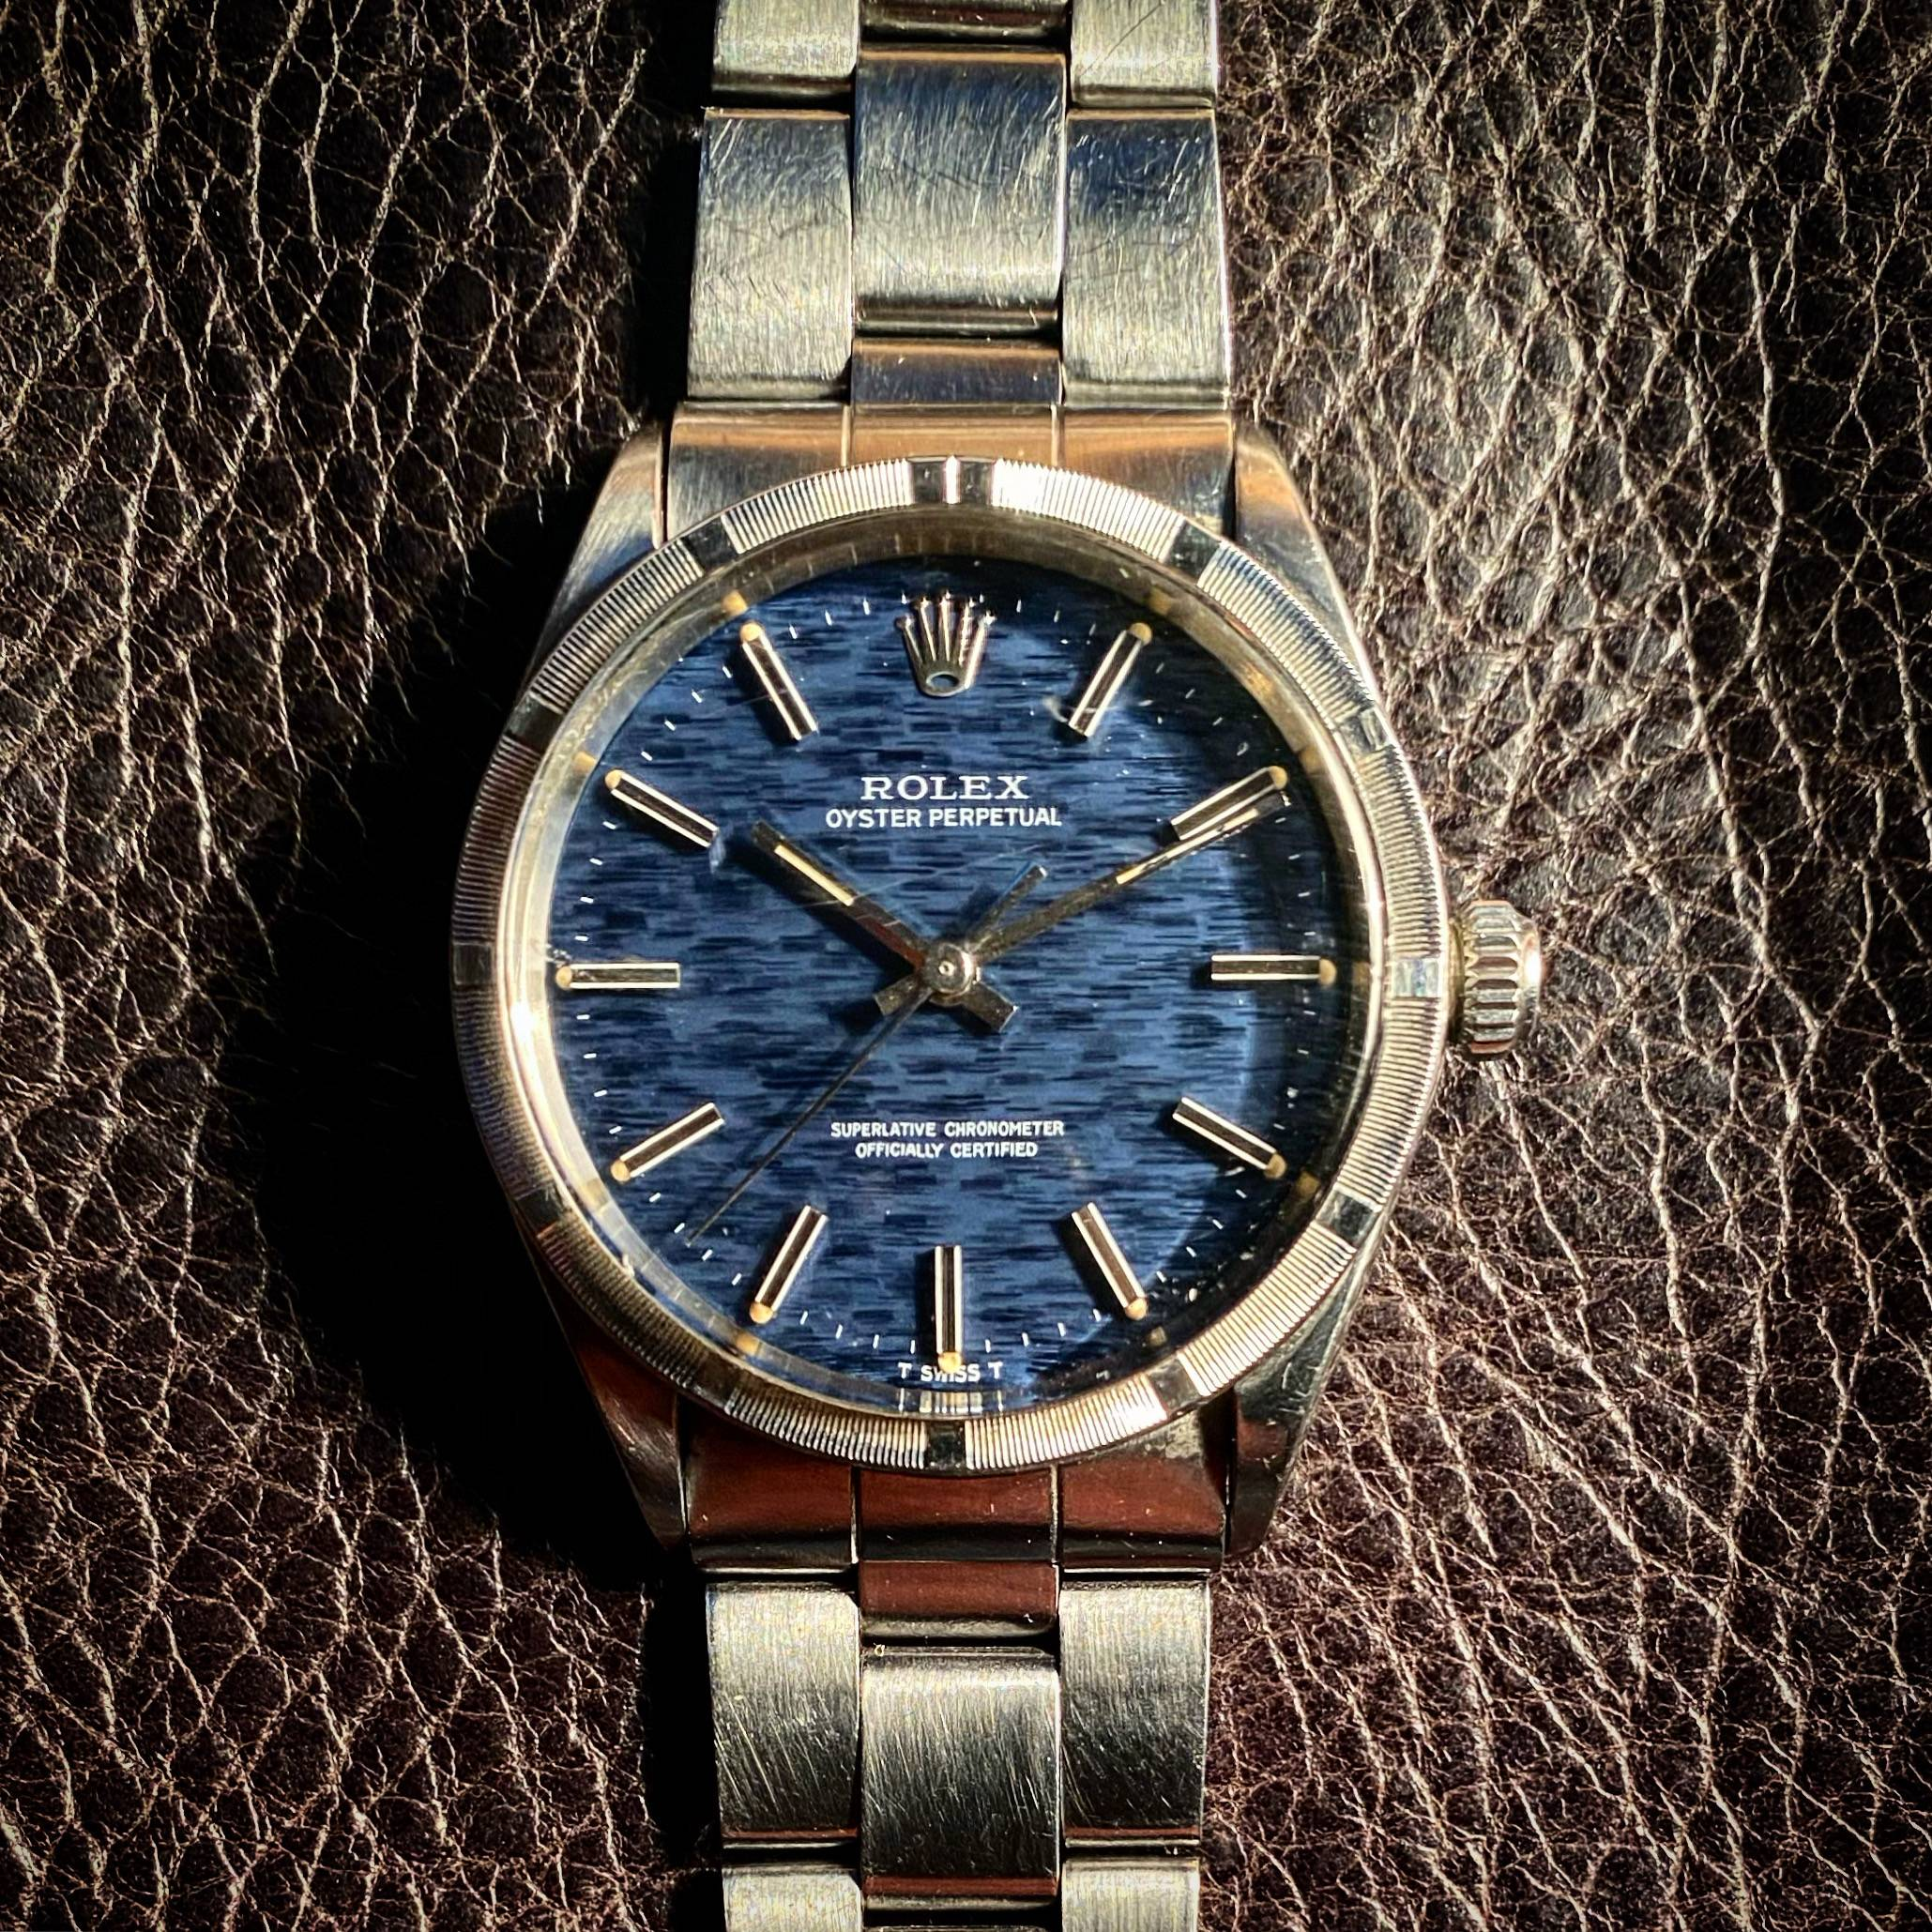 ROLEX OYSTER PERPETUAL ' MOSAIC-SHANTUNG ' DIAL